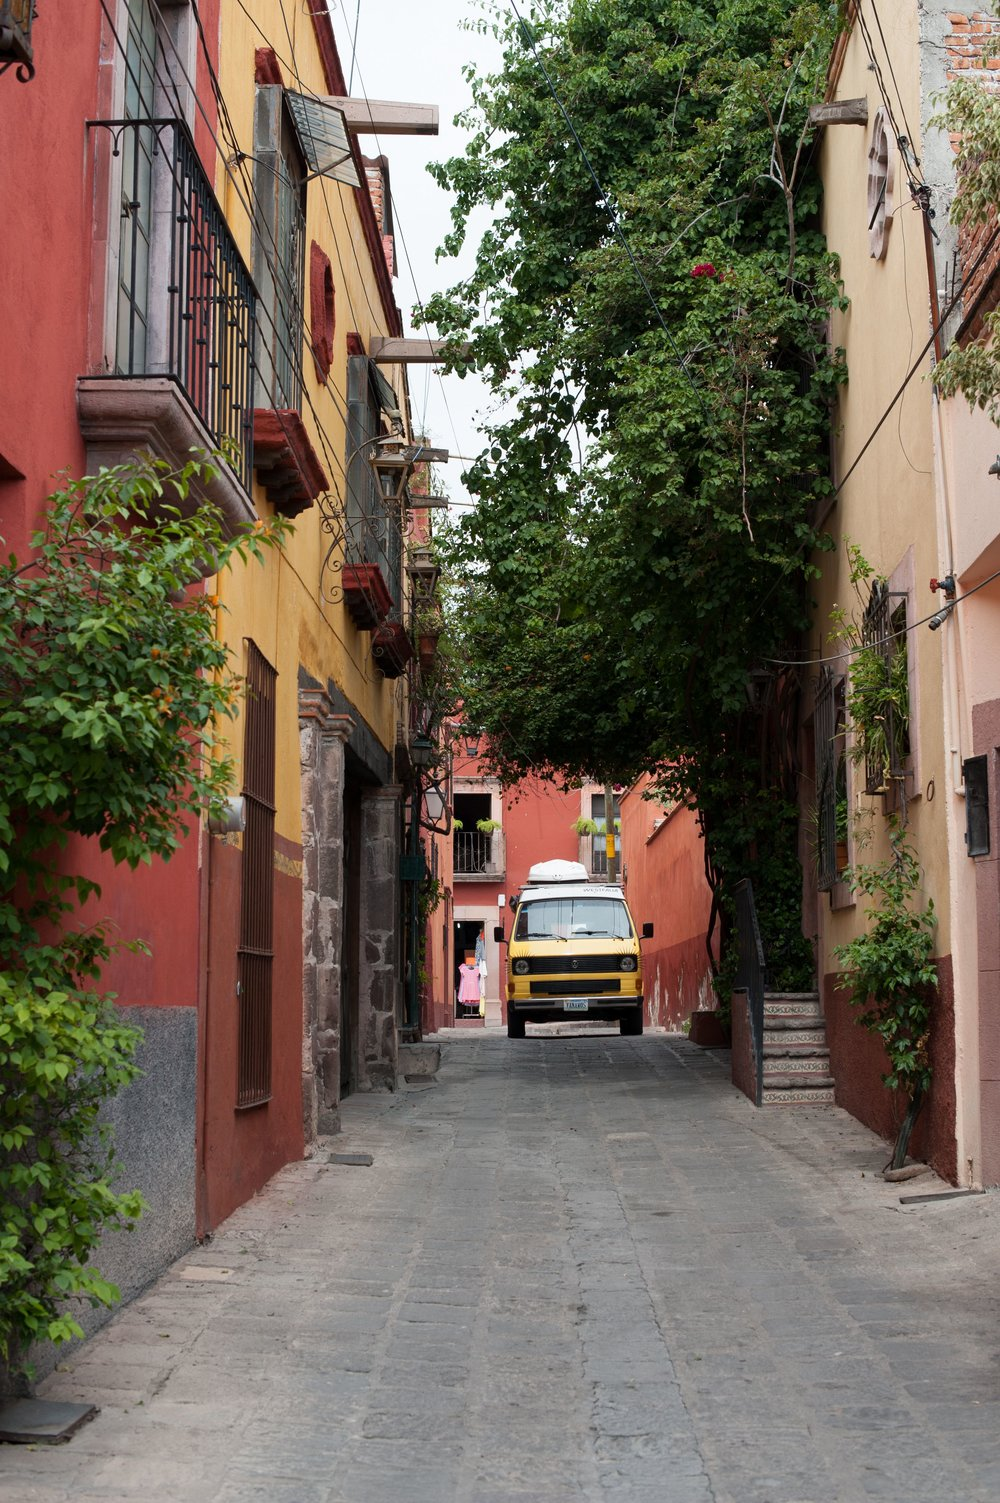 Colorful houses, narrow streets, and friendly people add allure to San Miguel de Allende, Mexico.